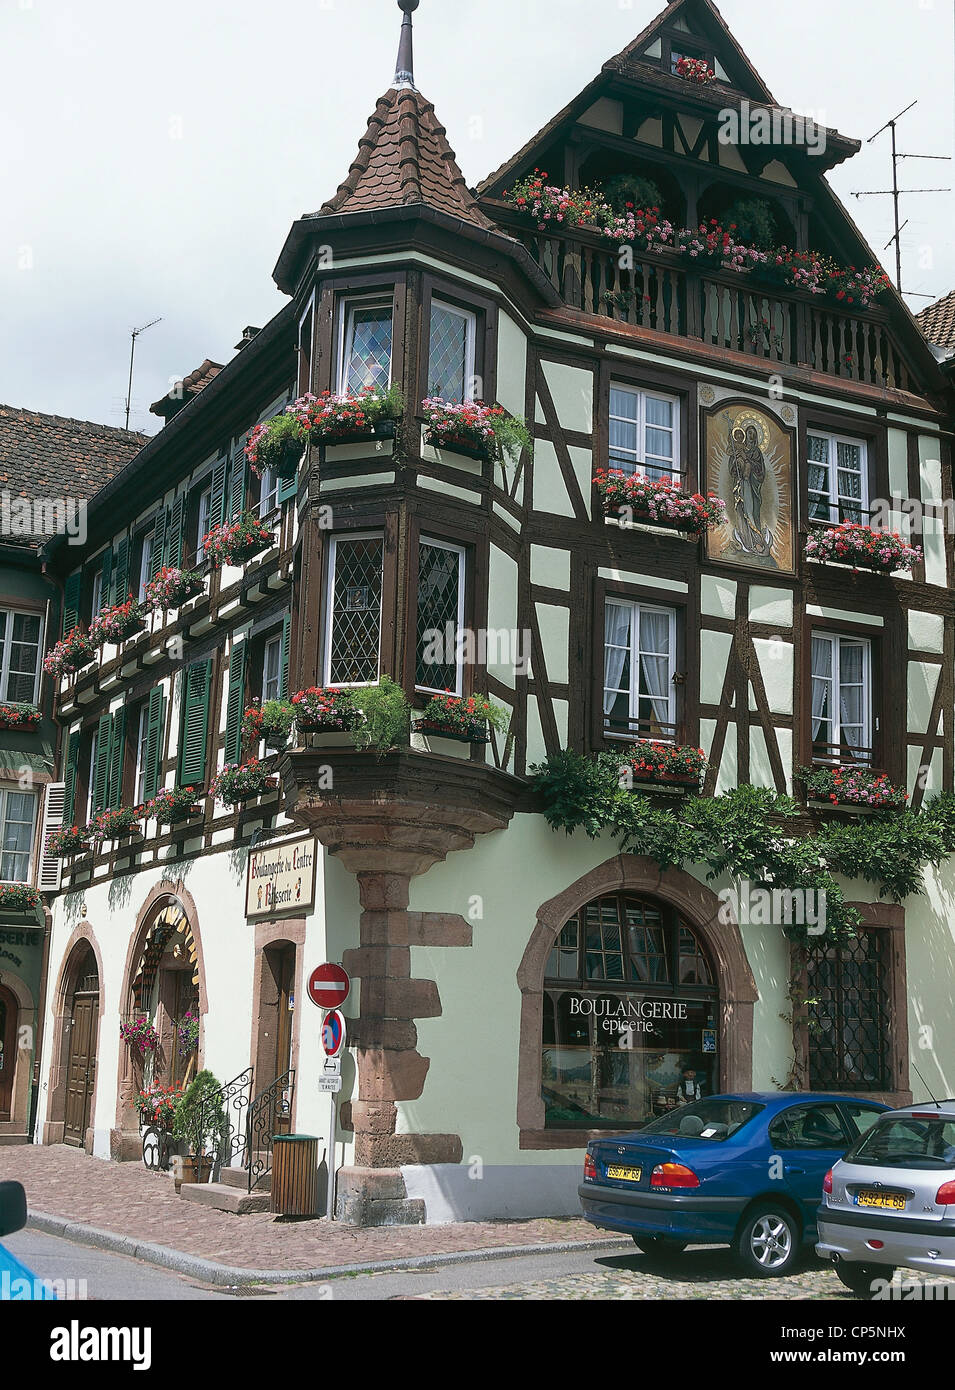 Map Of Kaiserberg France.France Alsace Kaiserberg Typical Half Timbered Stock Photos France